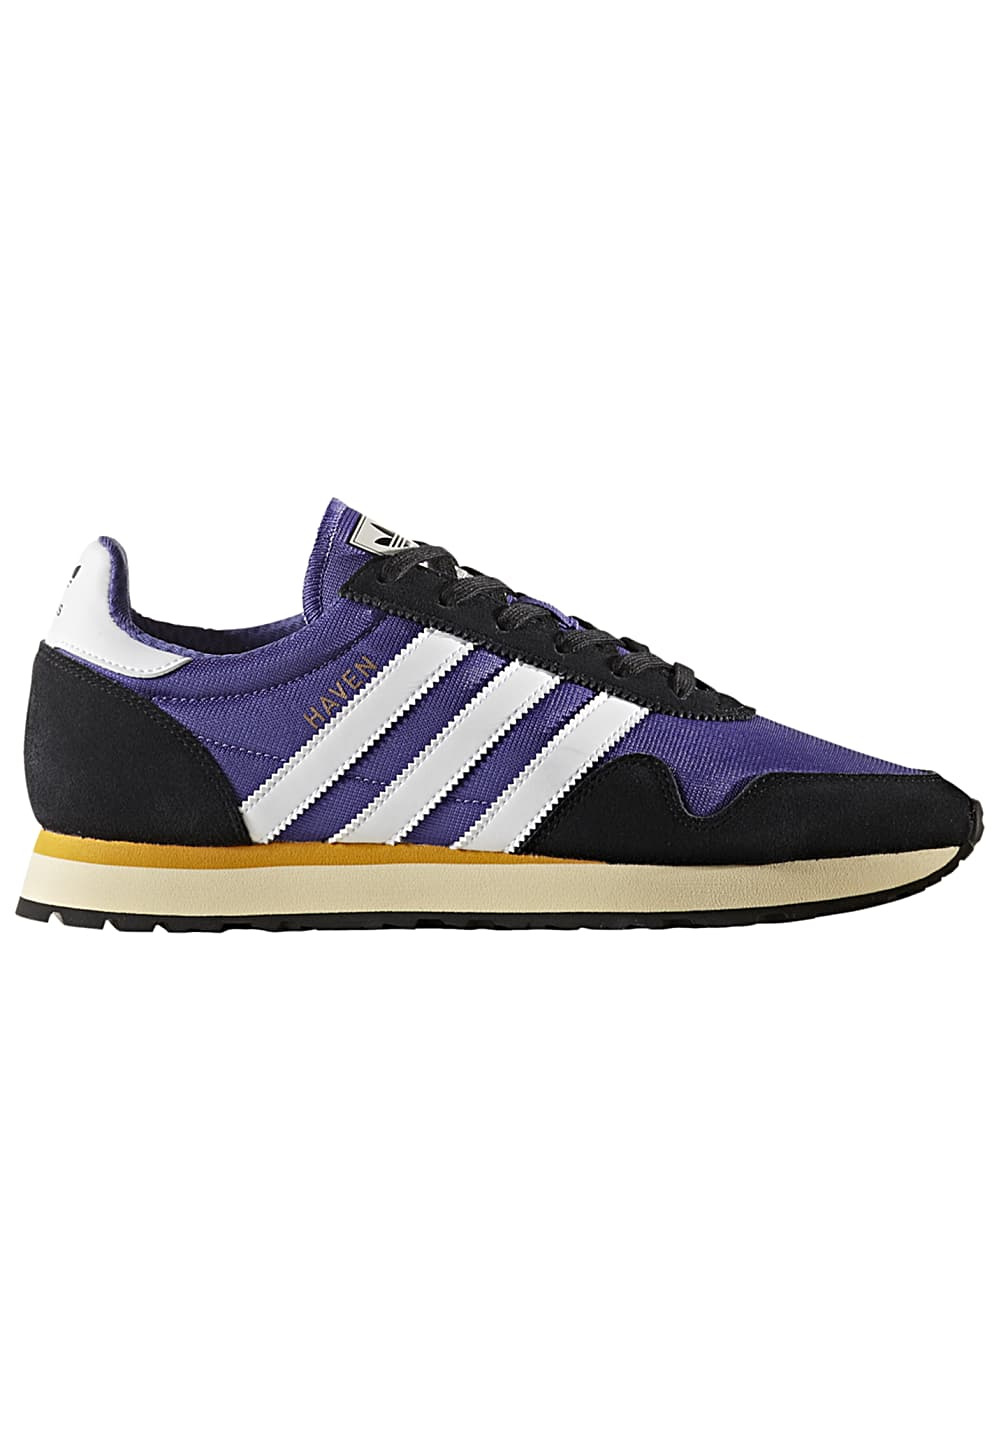 sneakers for cheap sale official site adidas Originals Haven - Sneaker für Herren - Blau